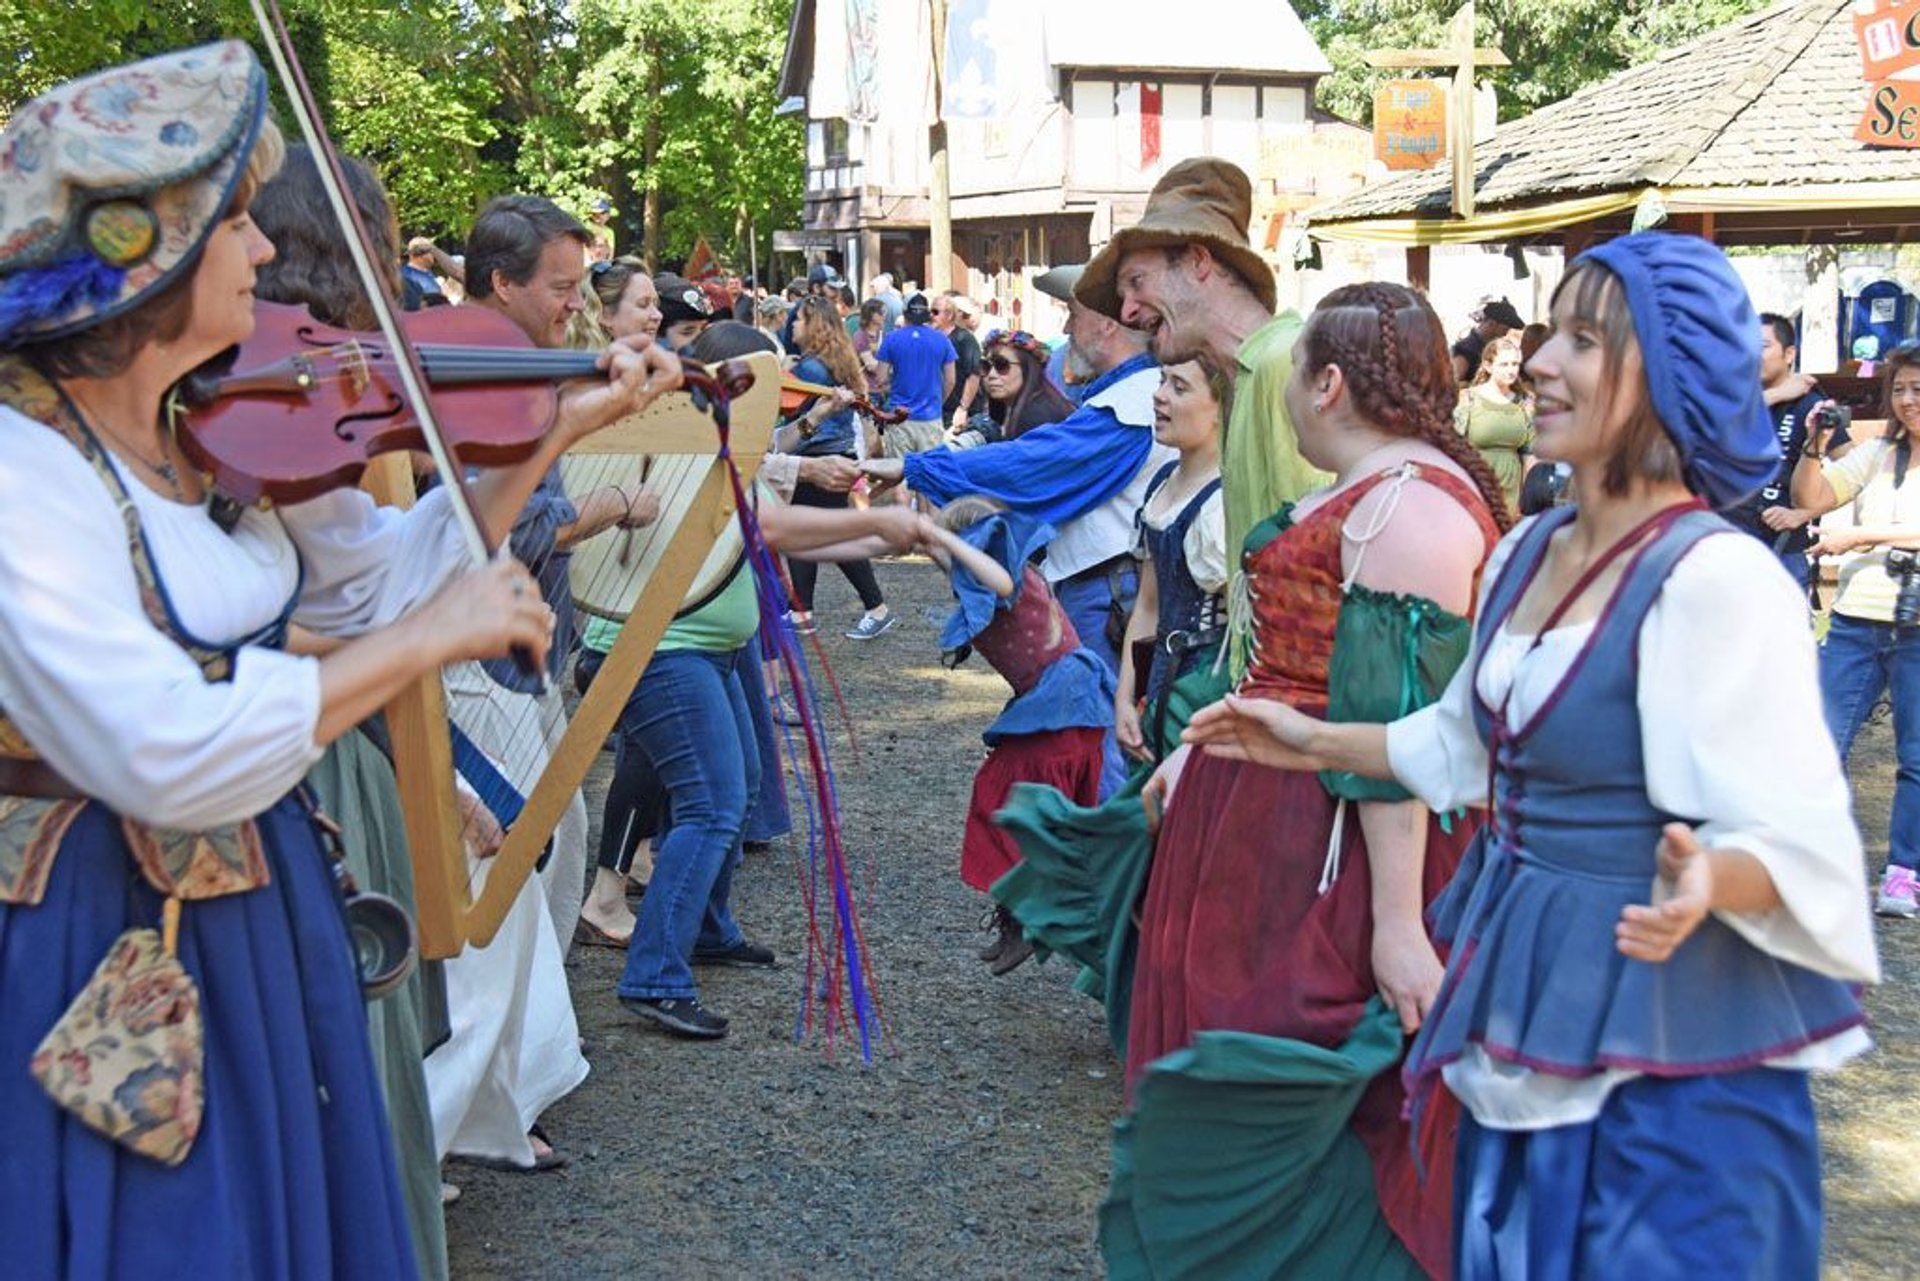 Best time for Maryland Renaissance Festival 2020